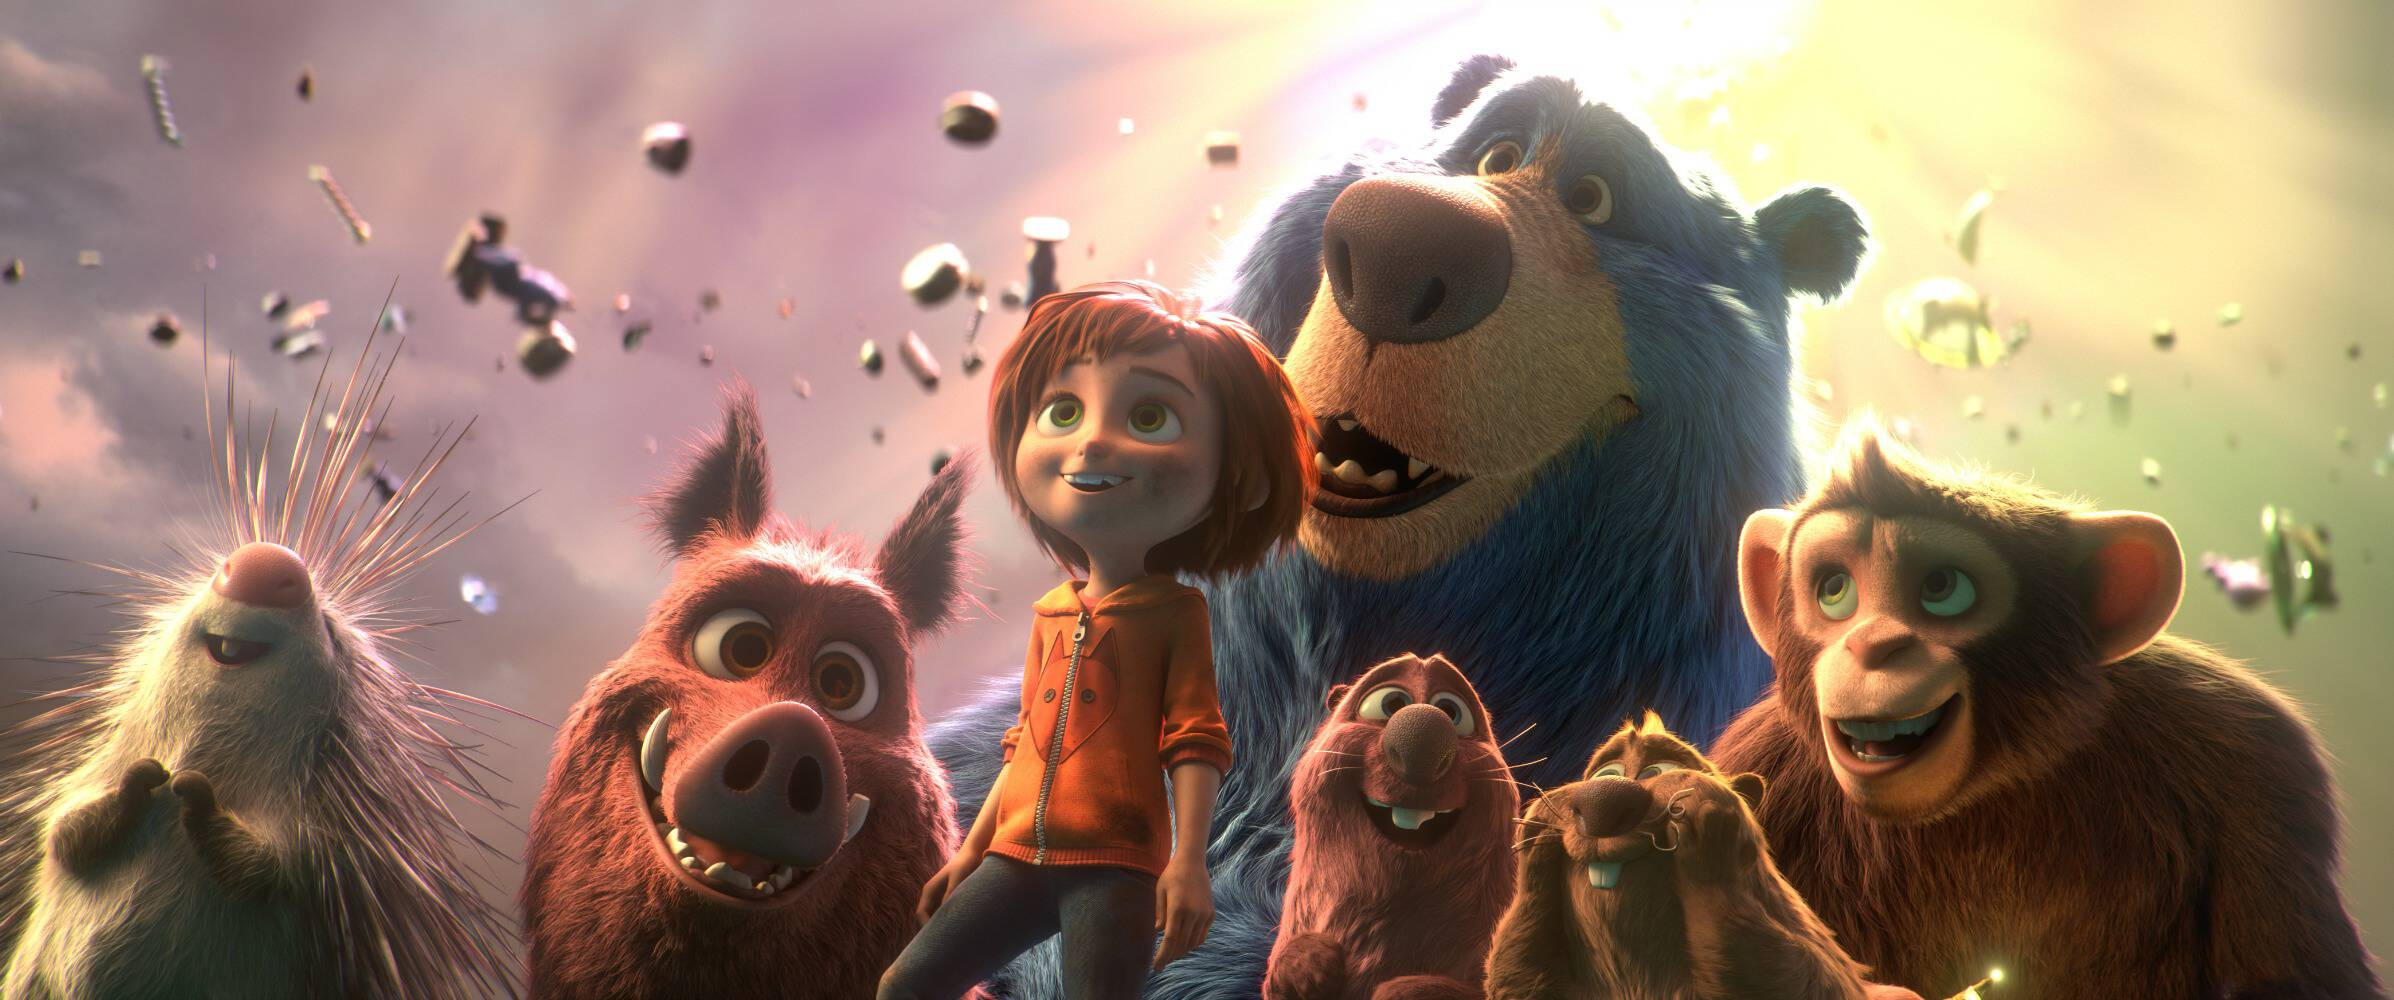 Check out the new WONDER PARK trailer! This family-friendly film looks so fun and sweet. It hits theaters March 15, 2019!